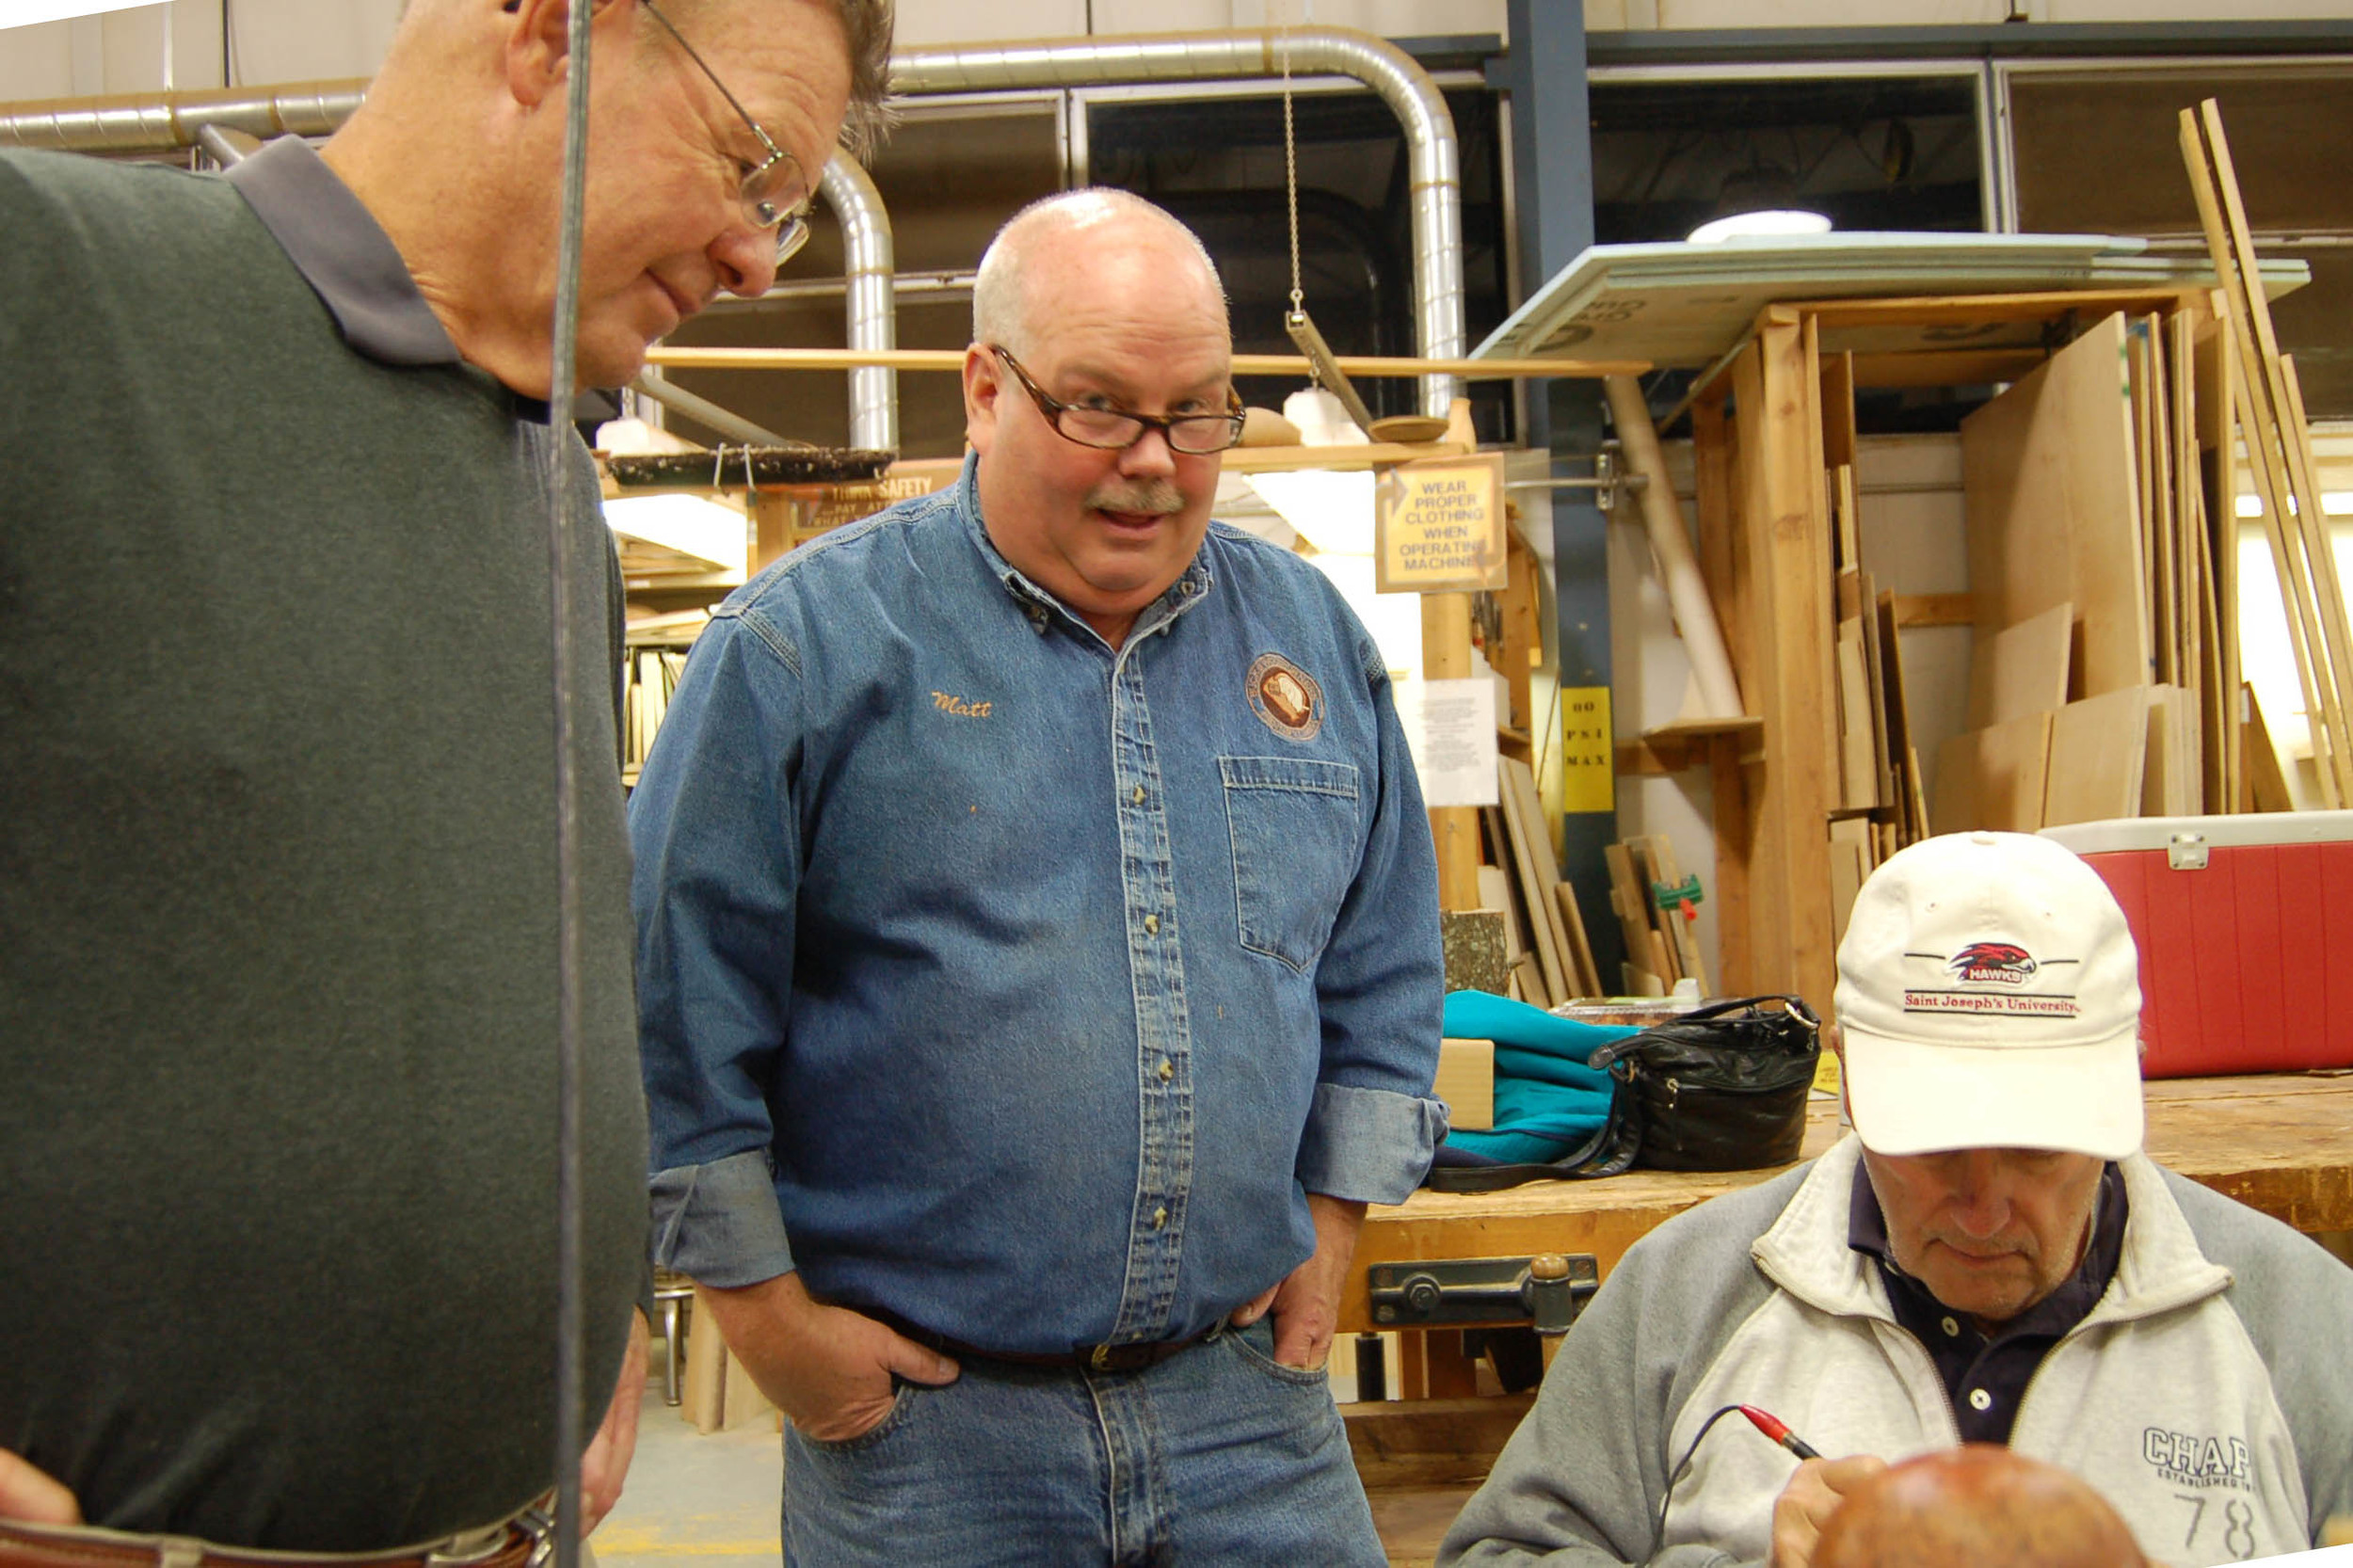 Keith Nelson and Matt Overton look on as John Williams demonstrates his signature pyrography.